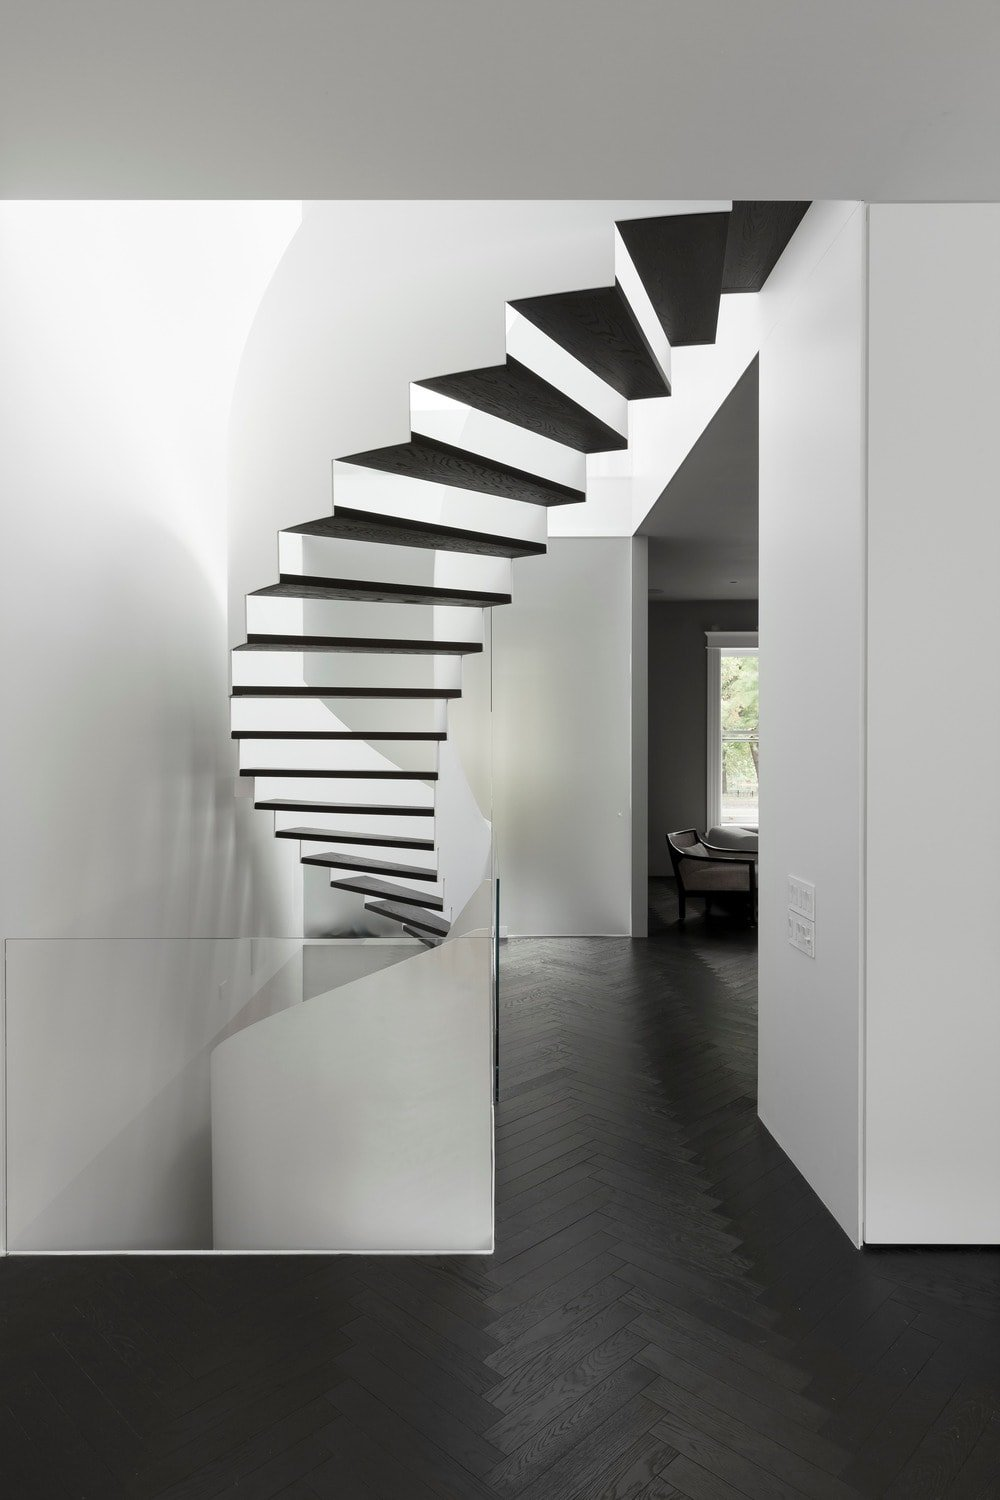 This is the view of the black and white modern spiral staircase from the vantage of the second floor landing. Its design gives it an almost artistic monochromatic look.